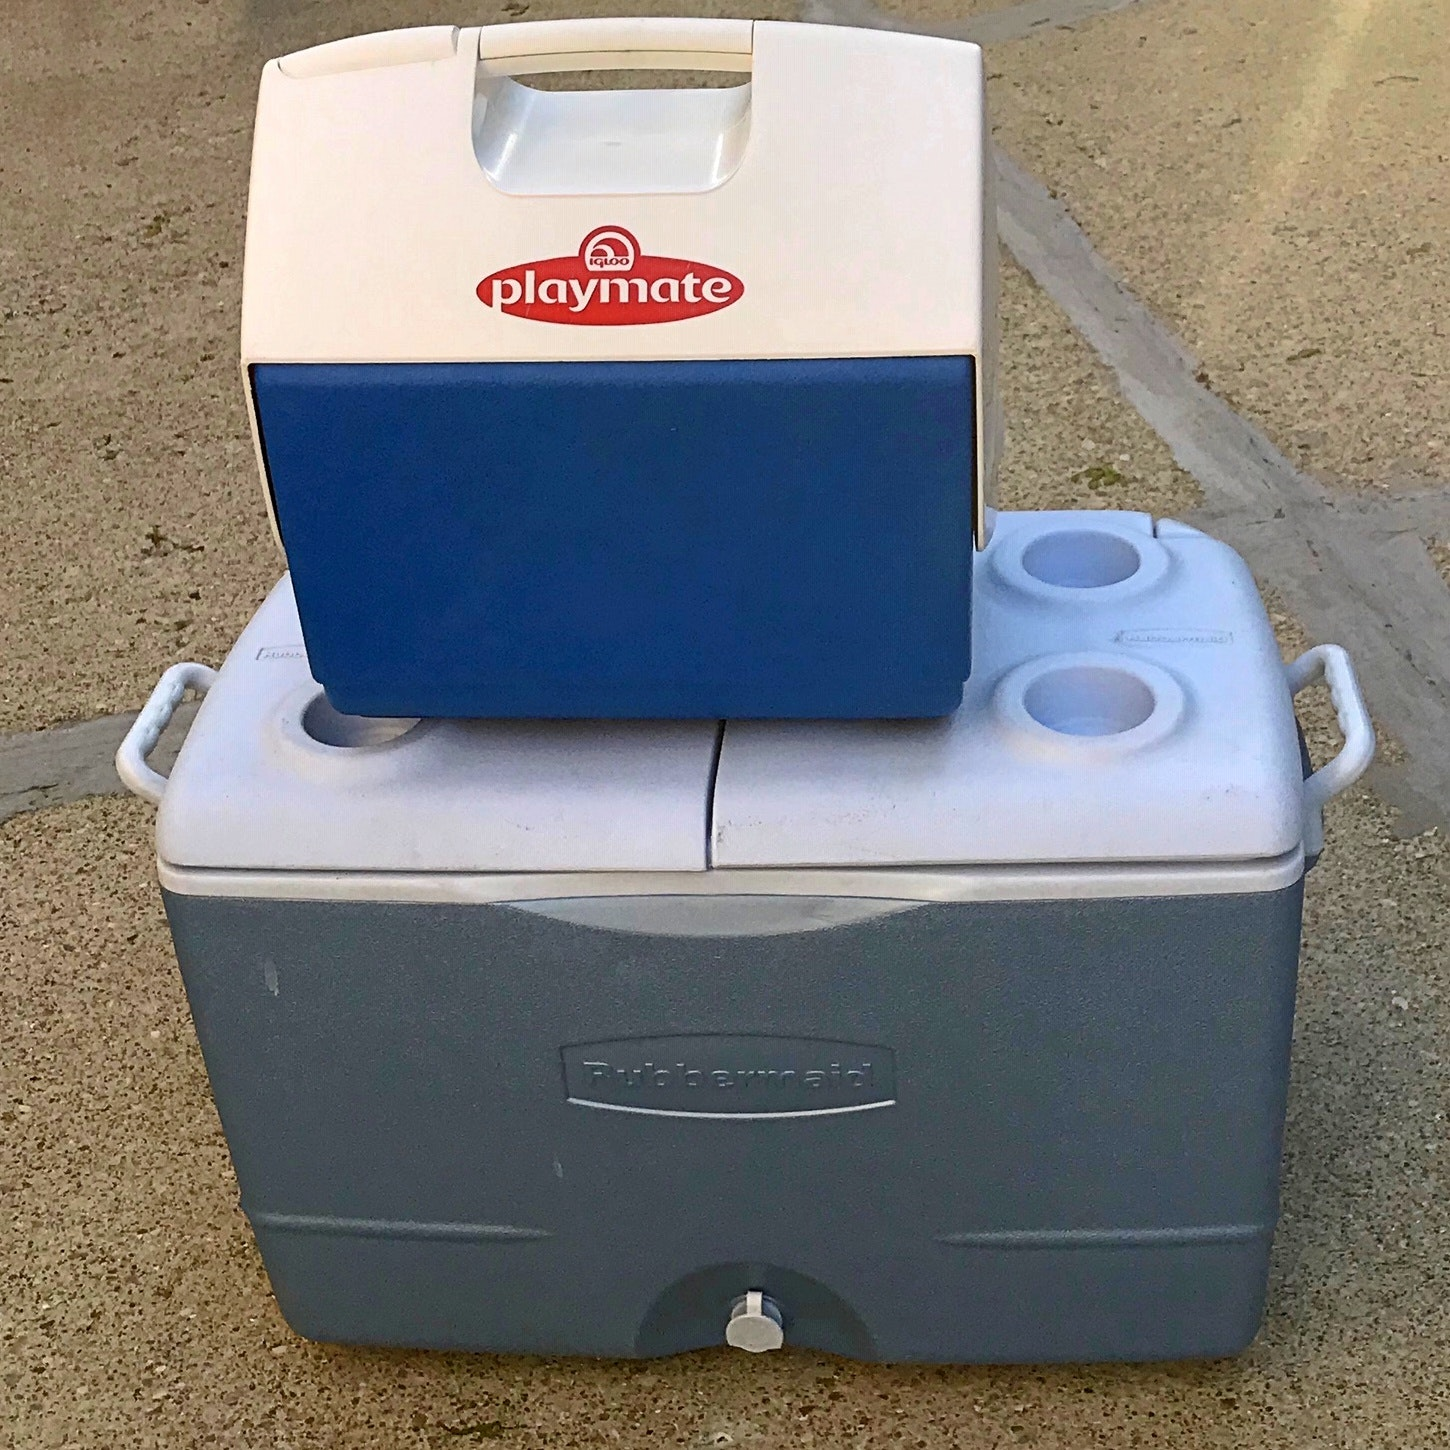 Igloo Playmate and Rubbermaid Coolers